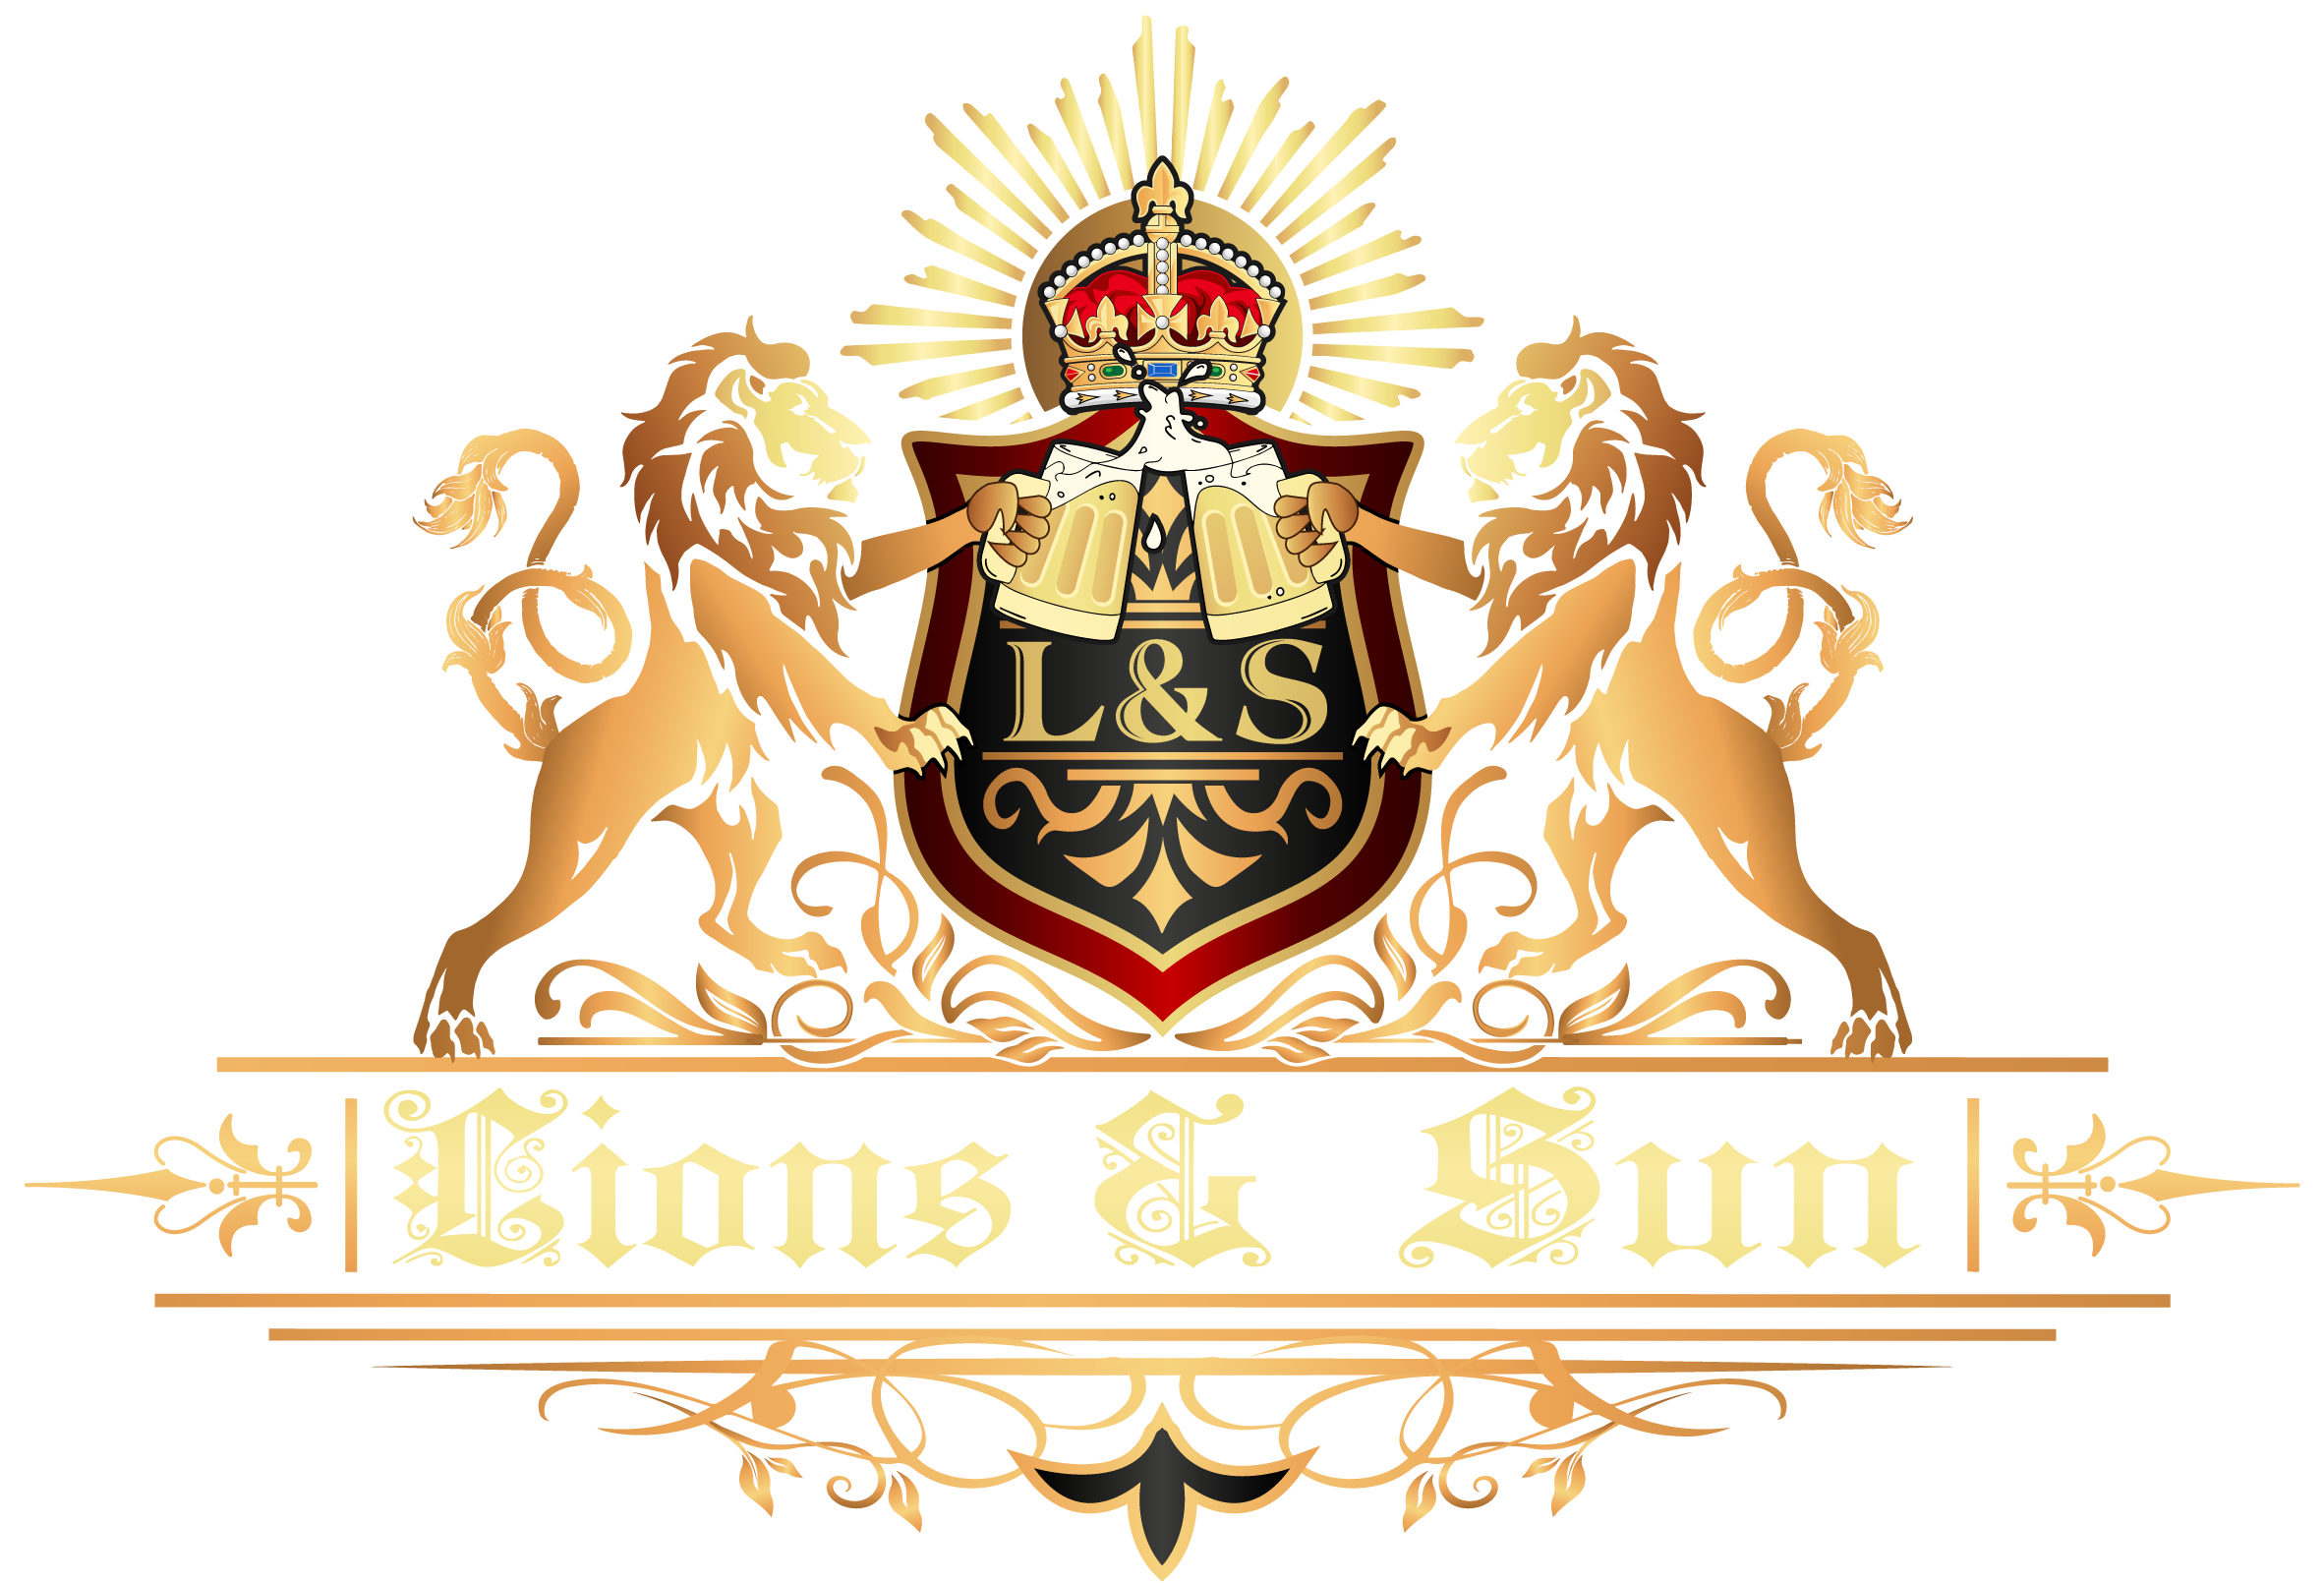 lions and sun logo